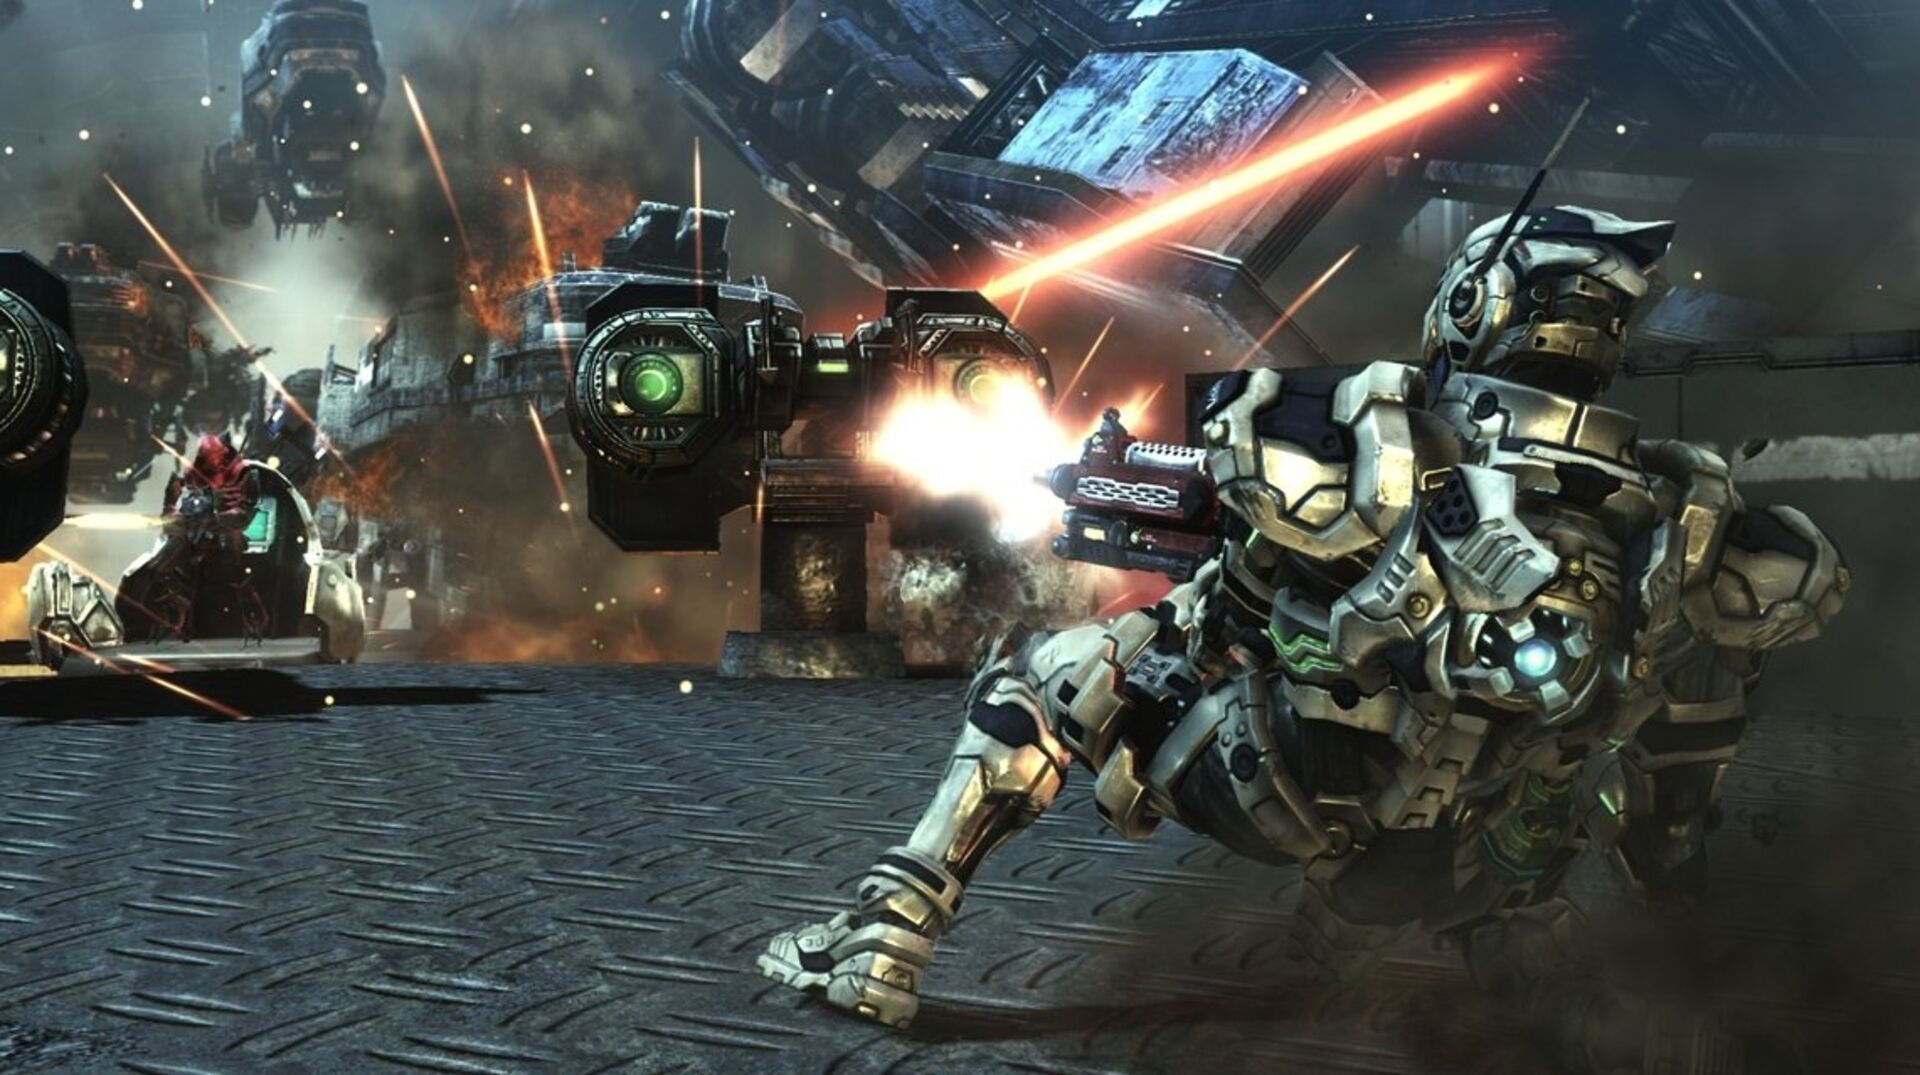 Xbox Games with Gold for May includes Vanquish, Metal Gear